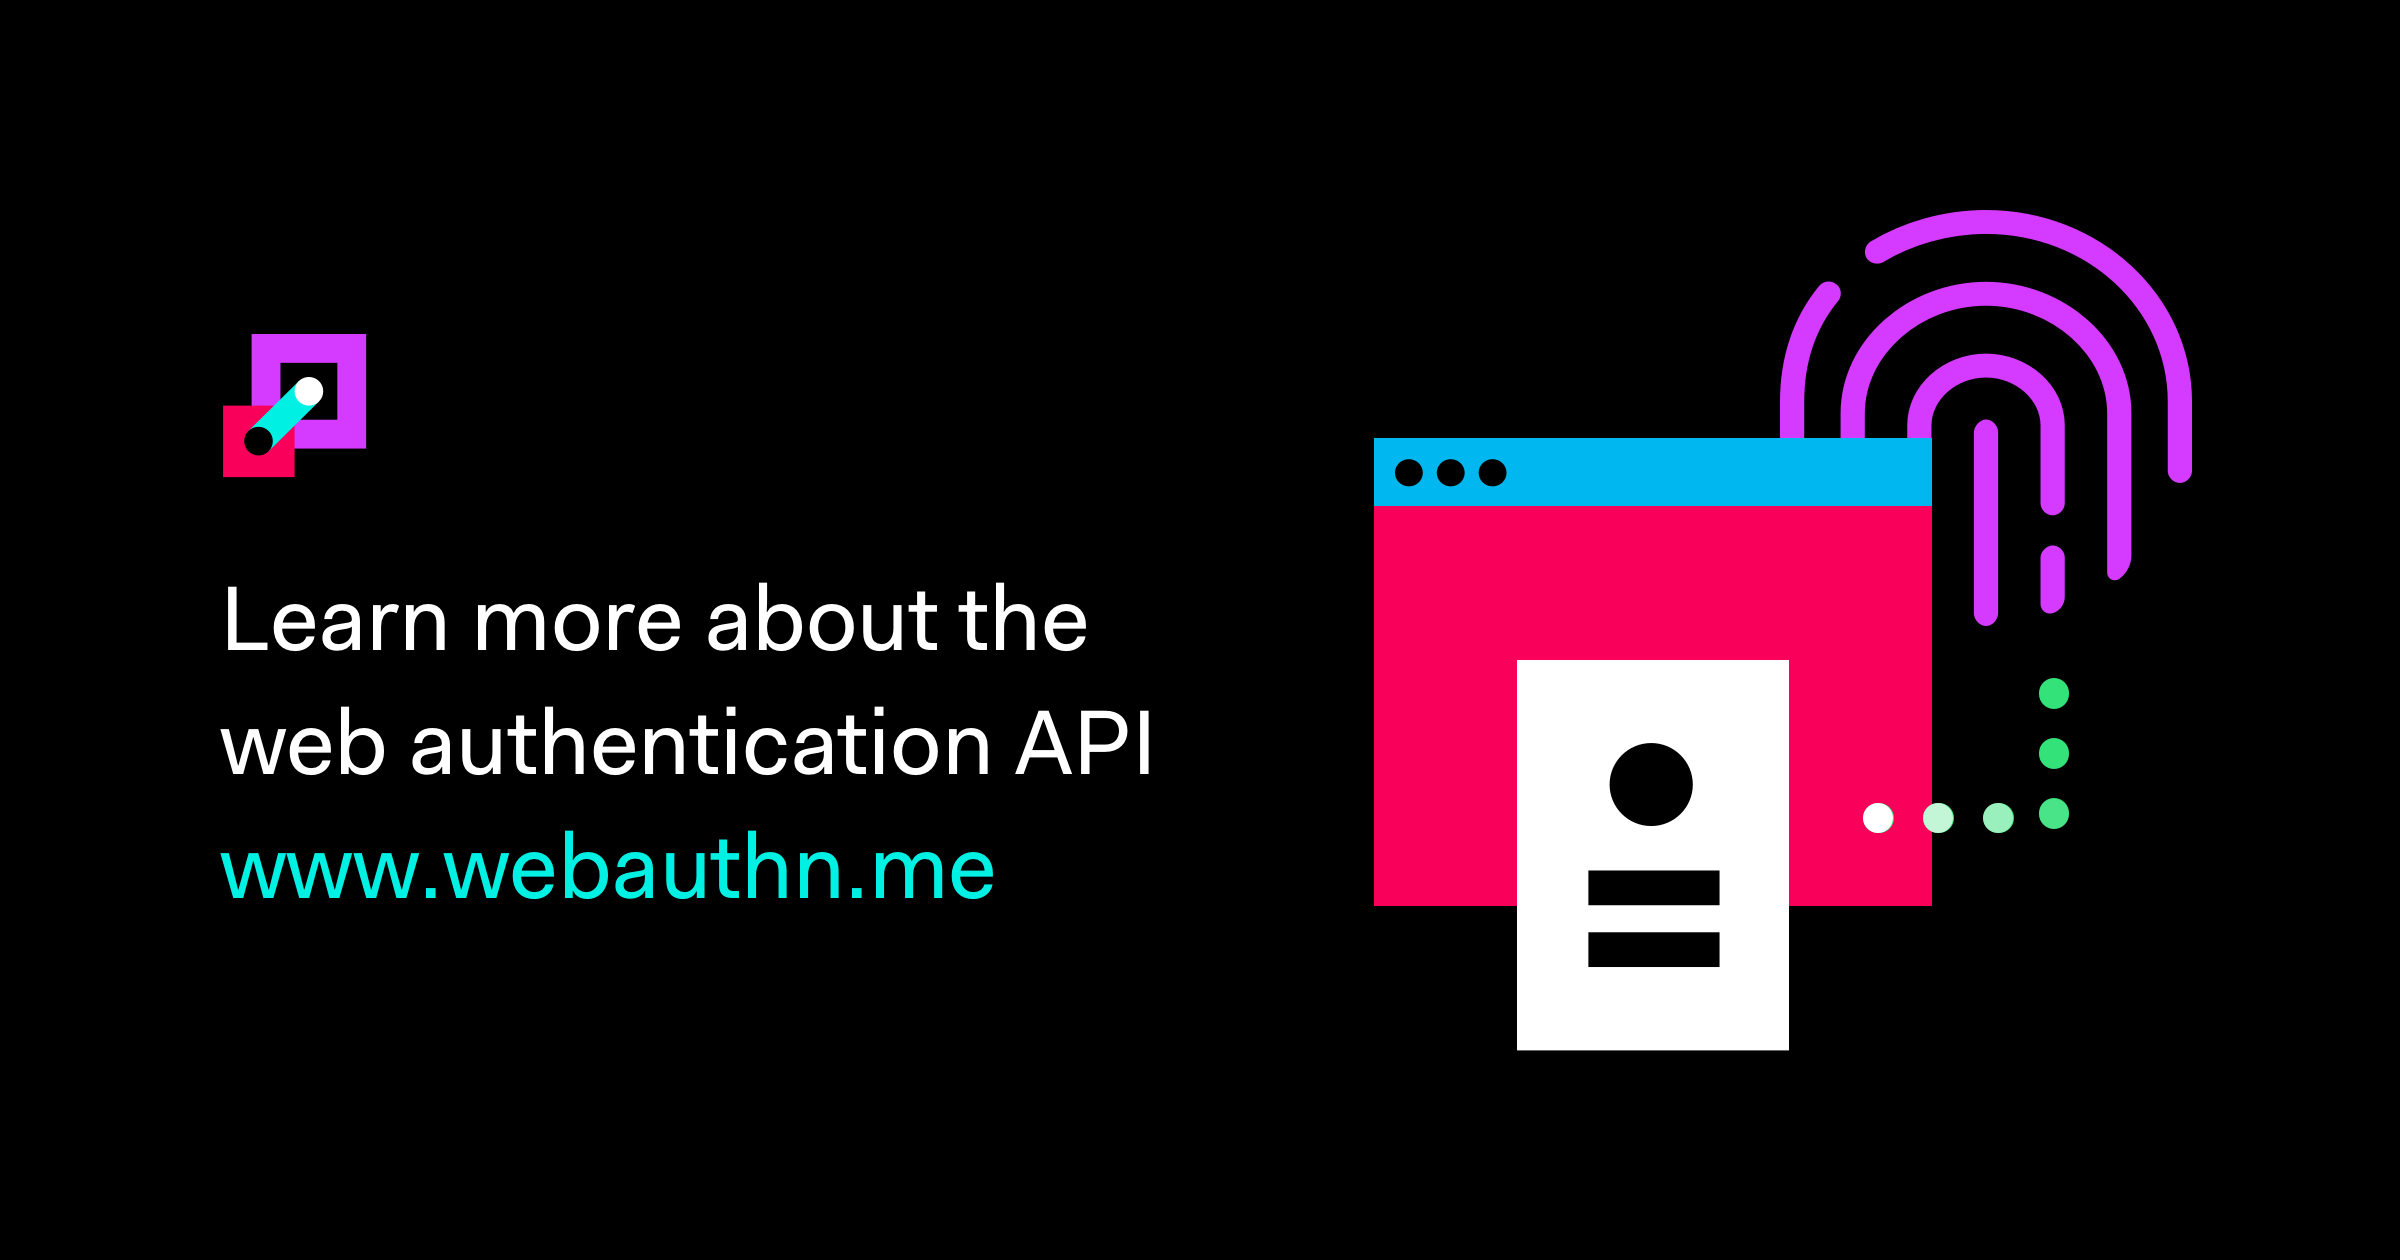 Web Authentication (WebAuthn) Credential and Login Demo